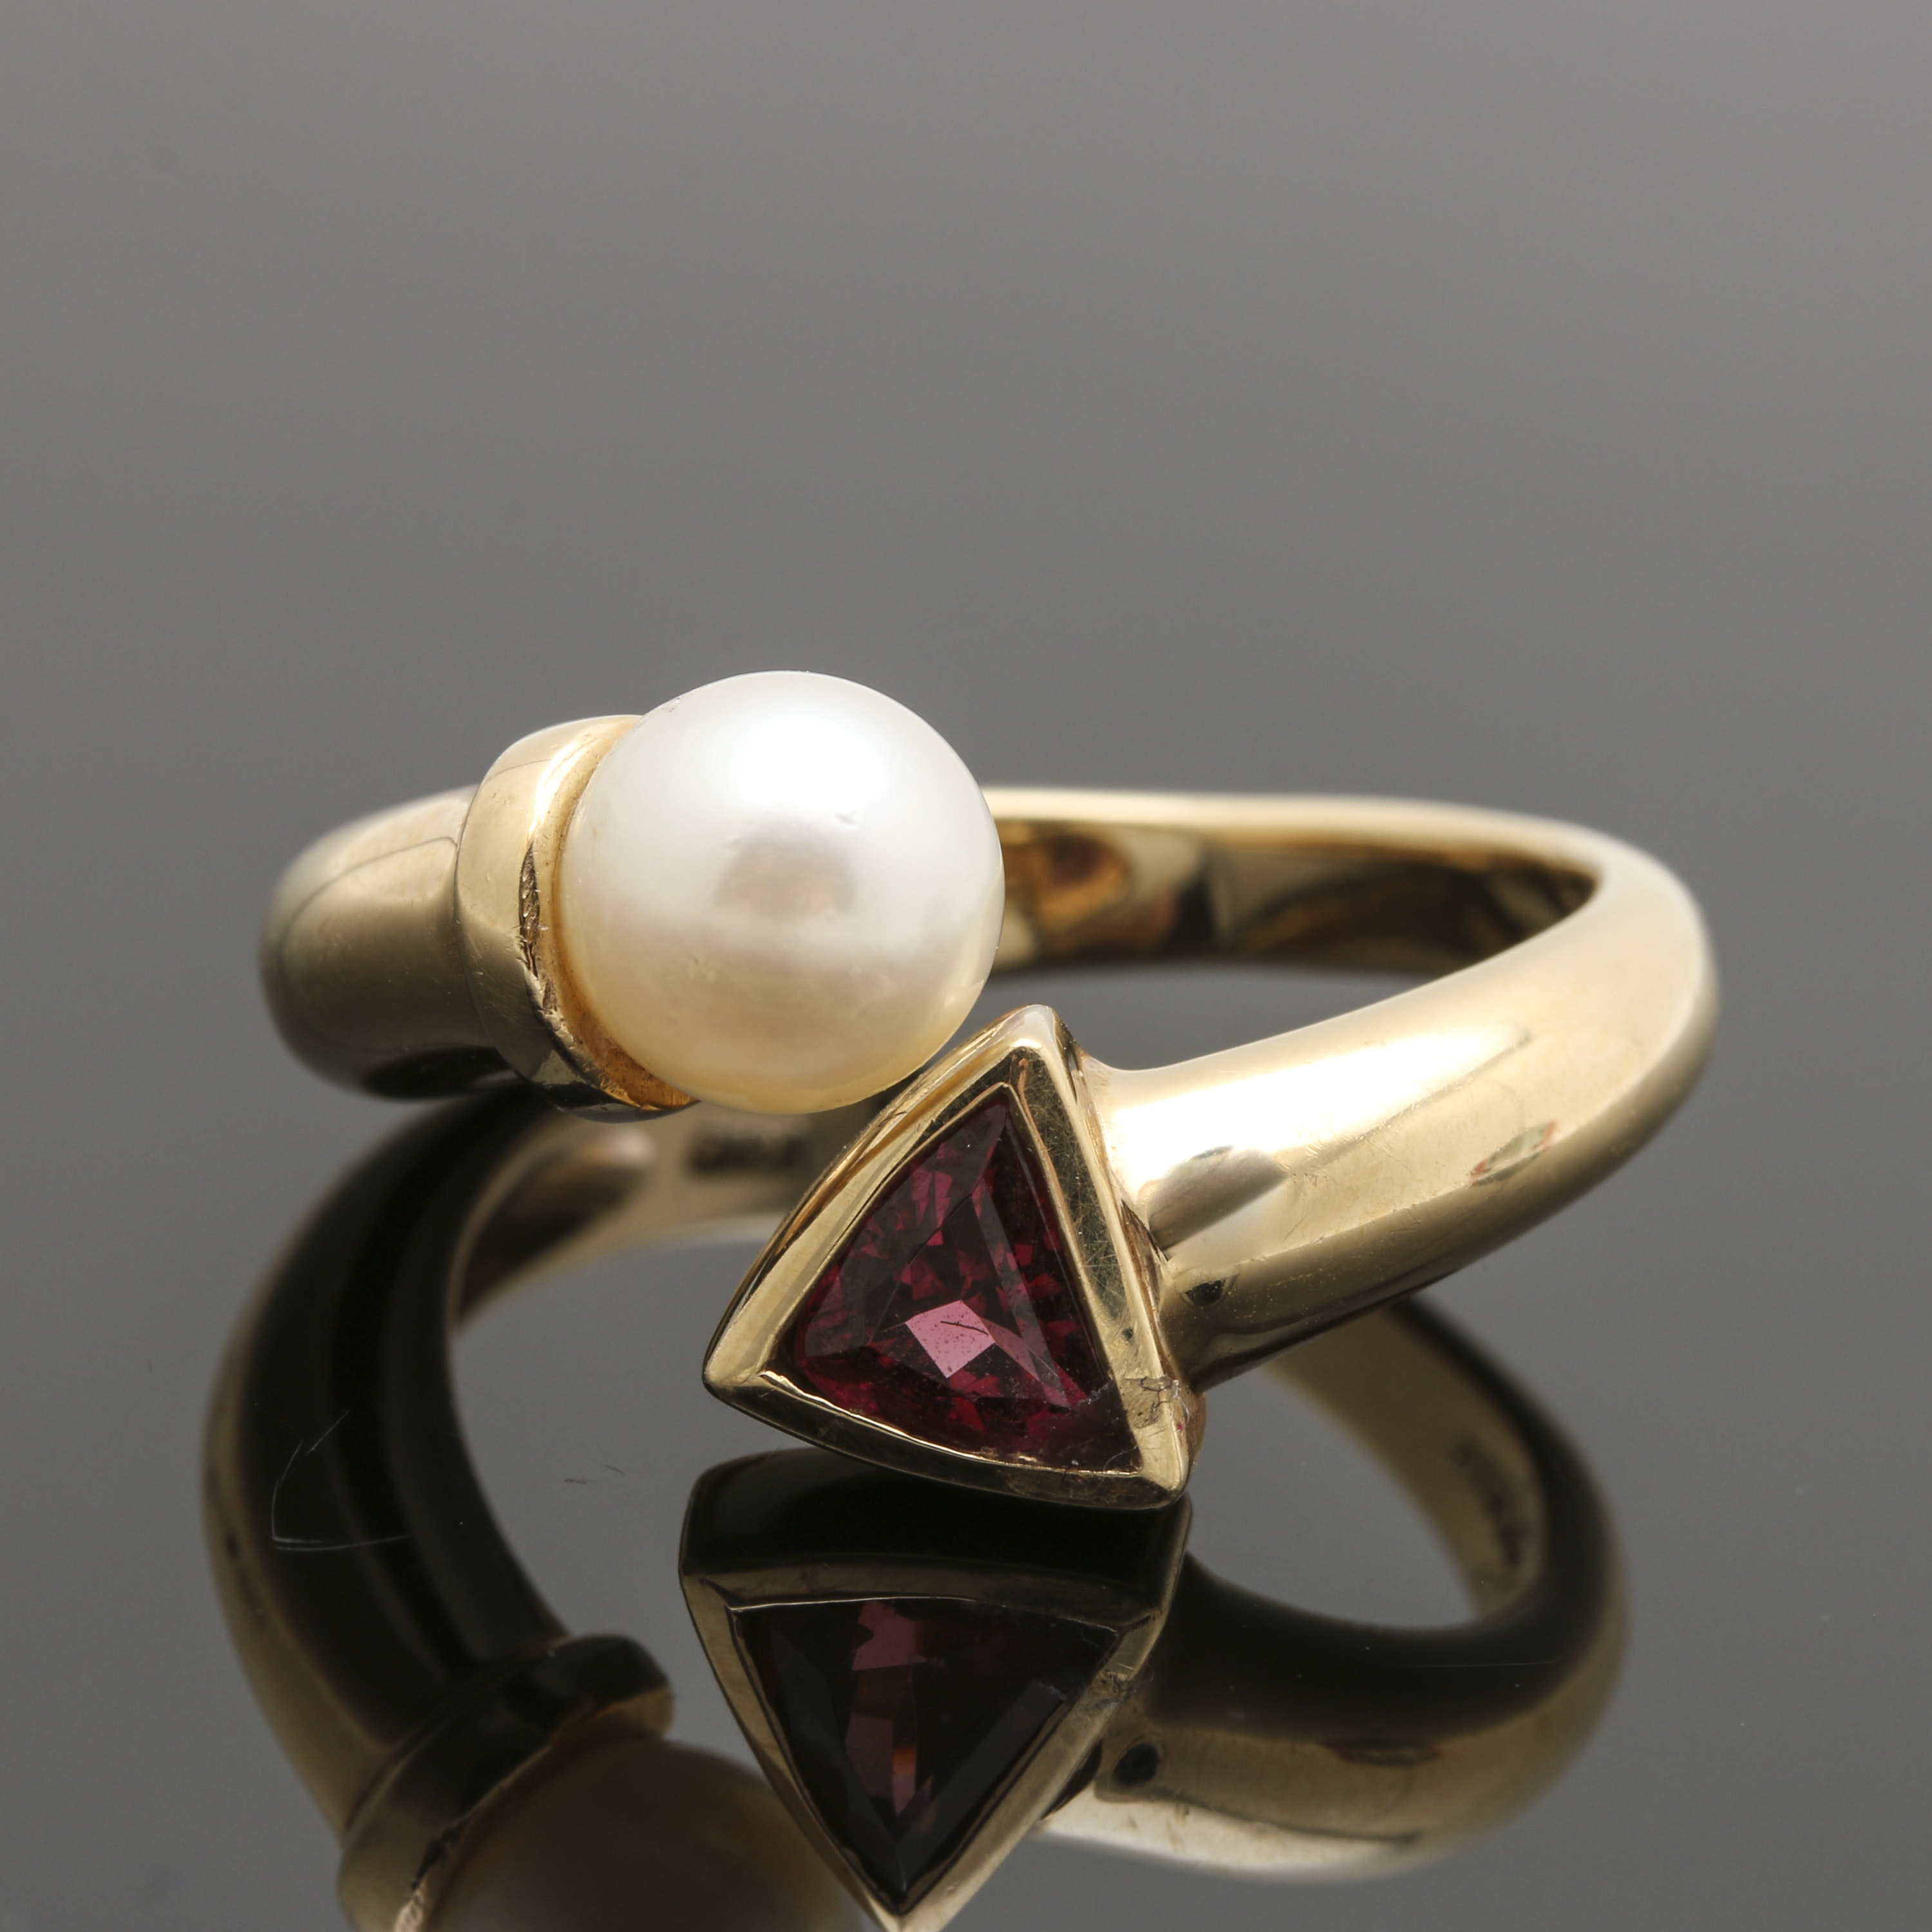 14K Yellow Gold Cultured Pearl and Garnet Bypass Ring